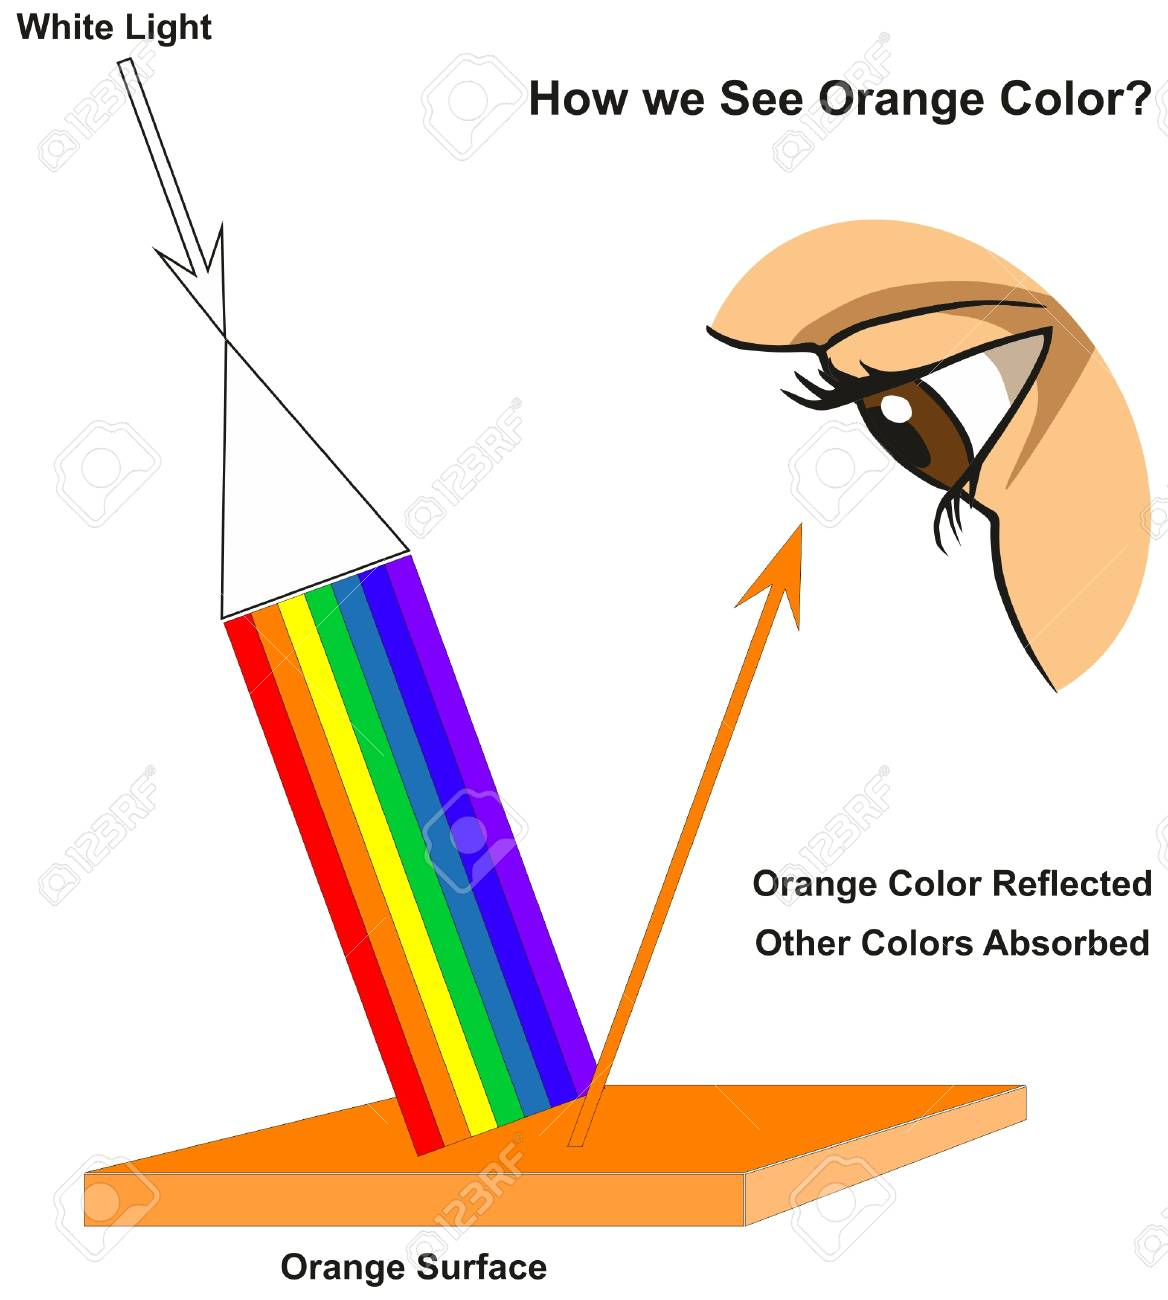 hight resolution of how we see orange color infographic diagram showing visible spectrum light on surface and colors reflected